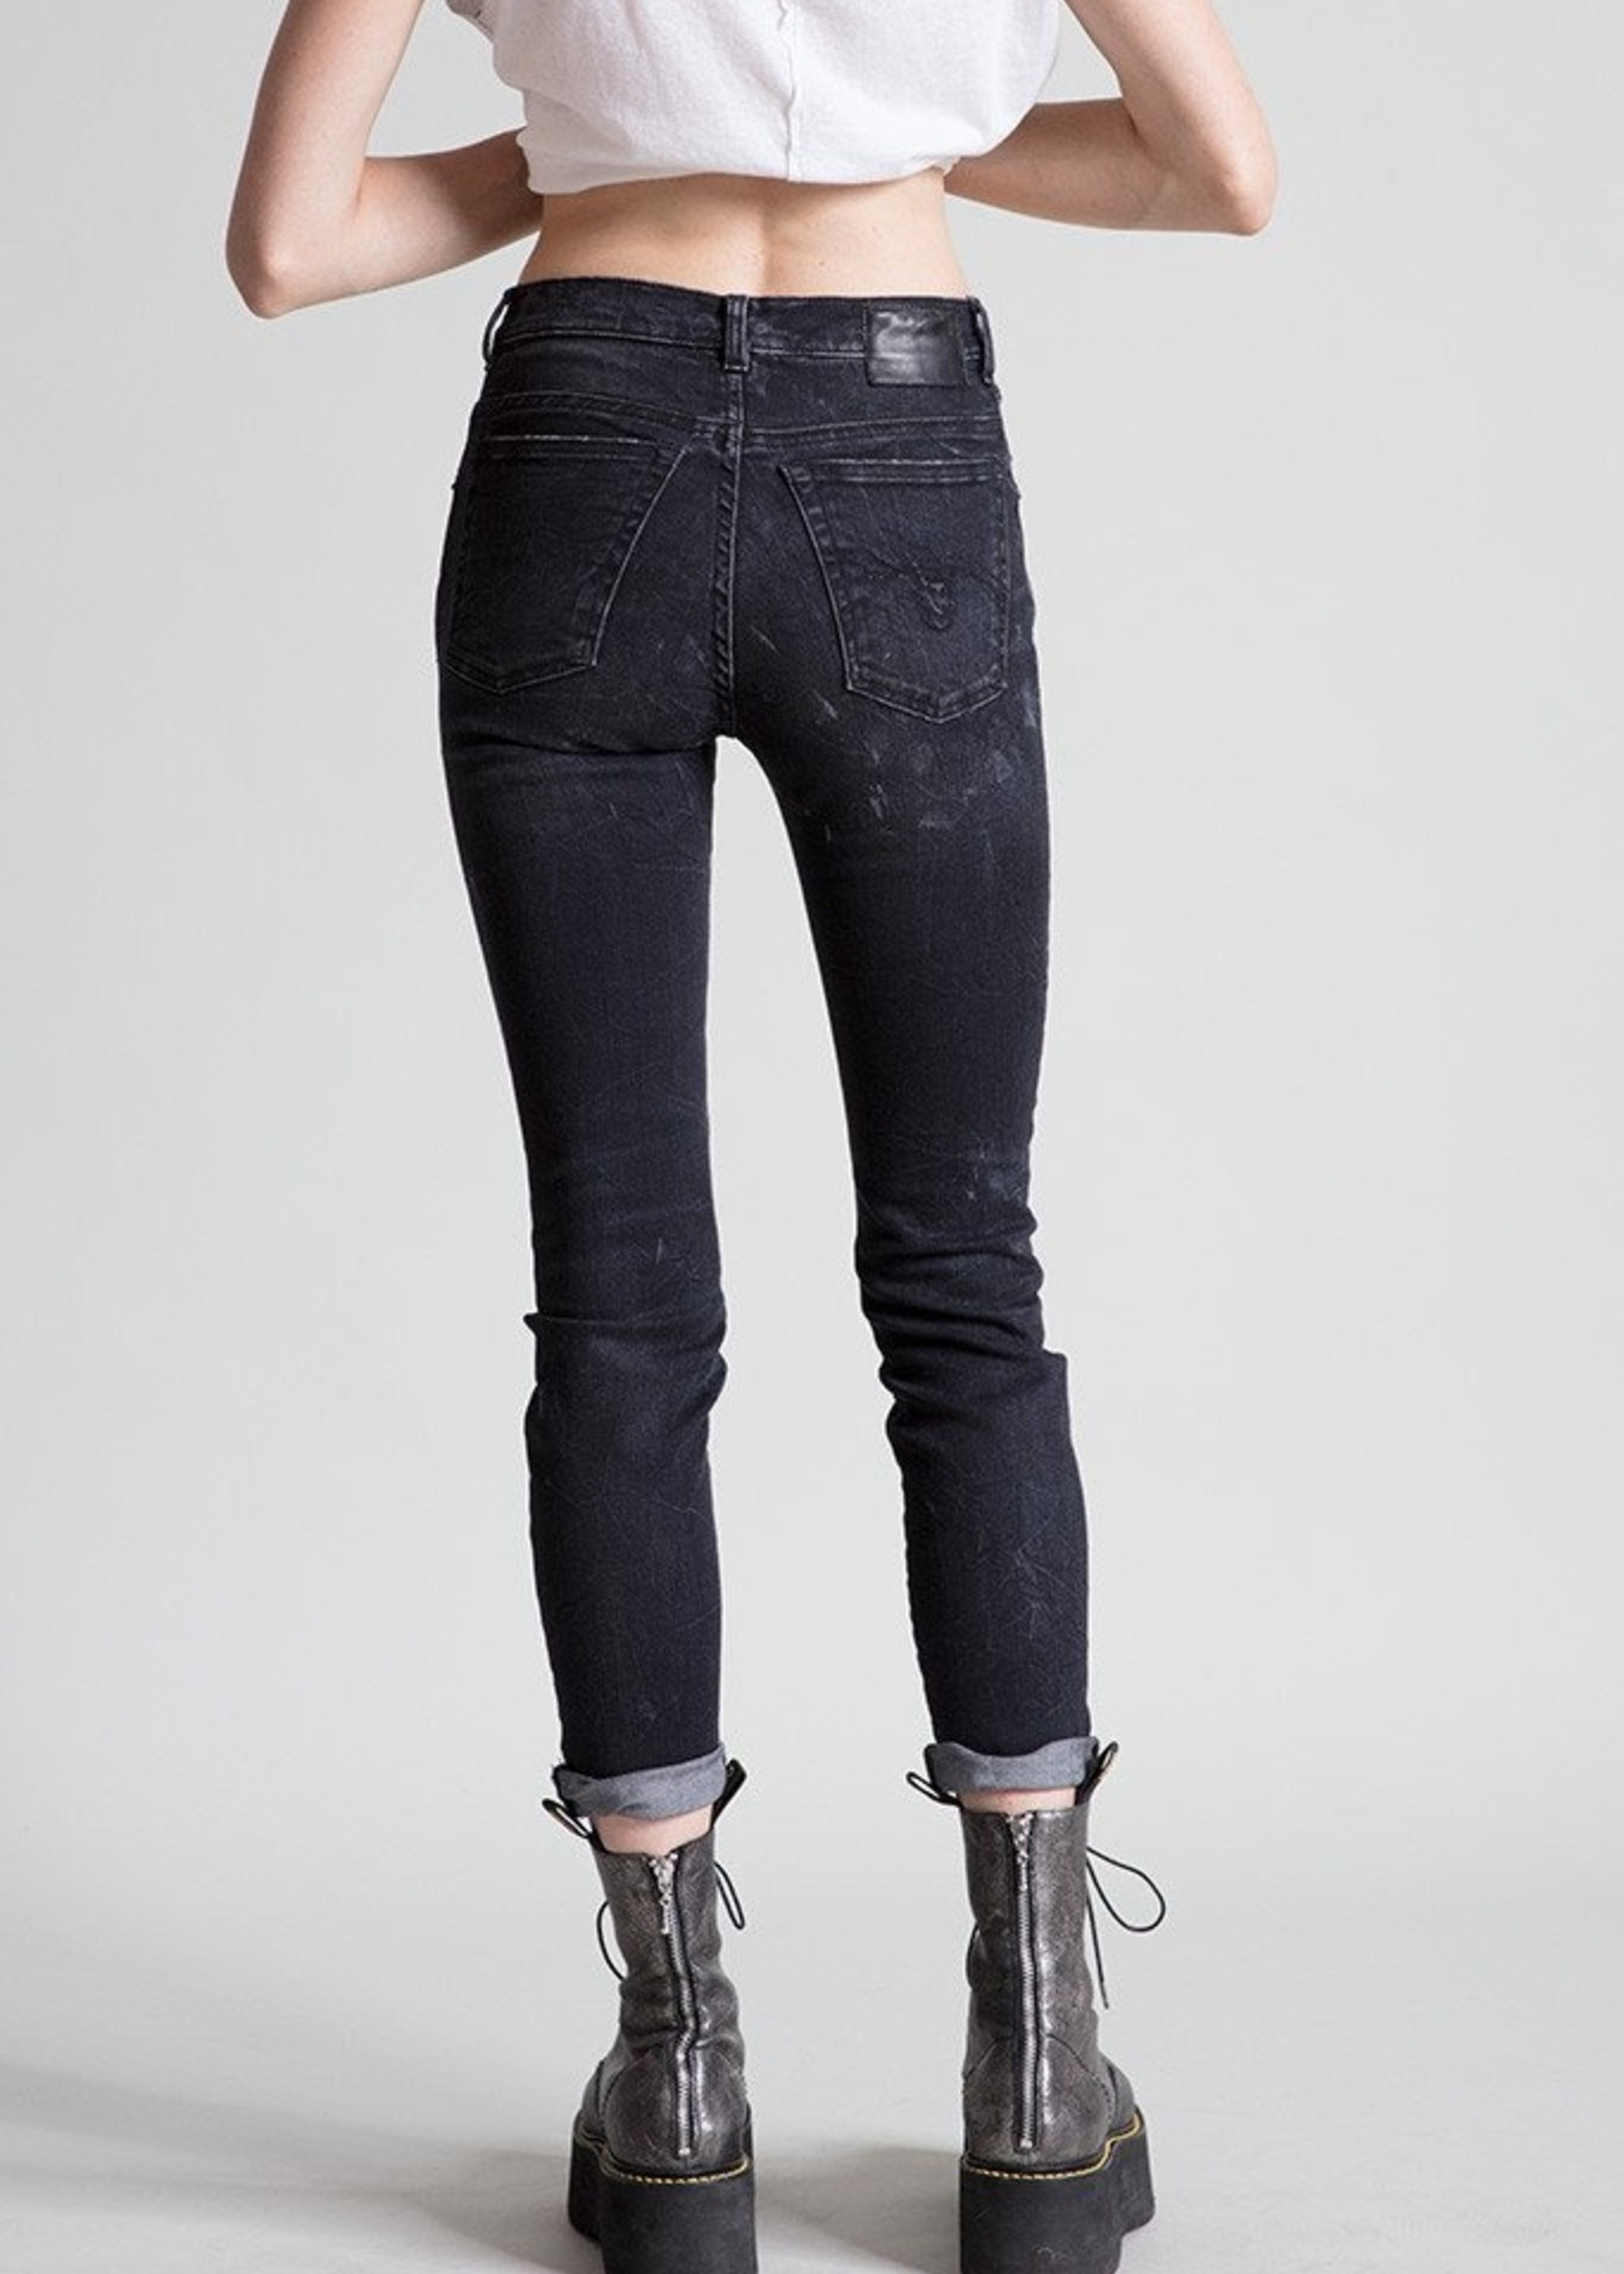 r13 r 13 high rise  skinny blk marble